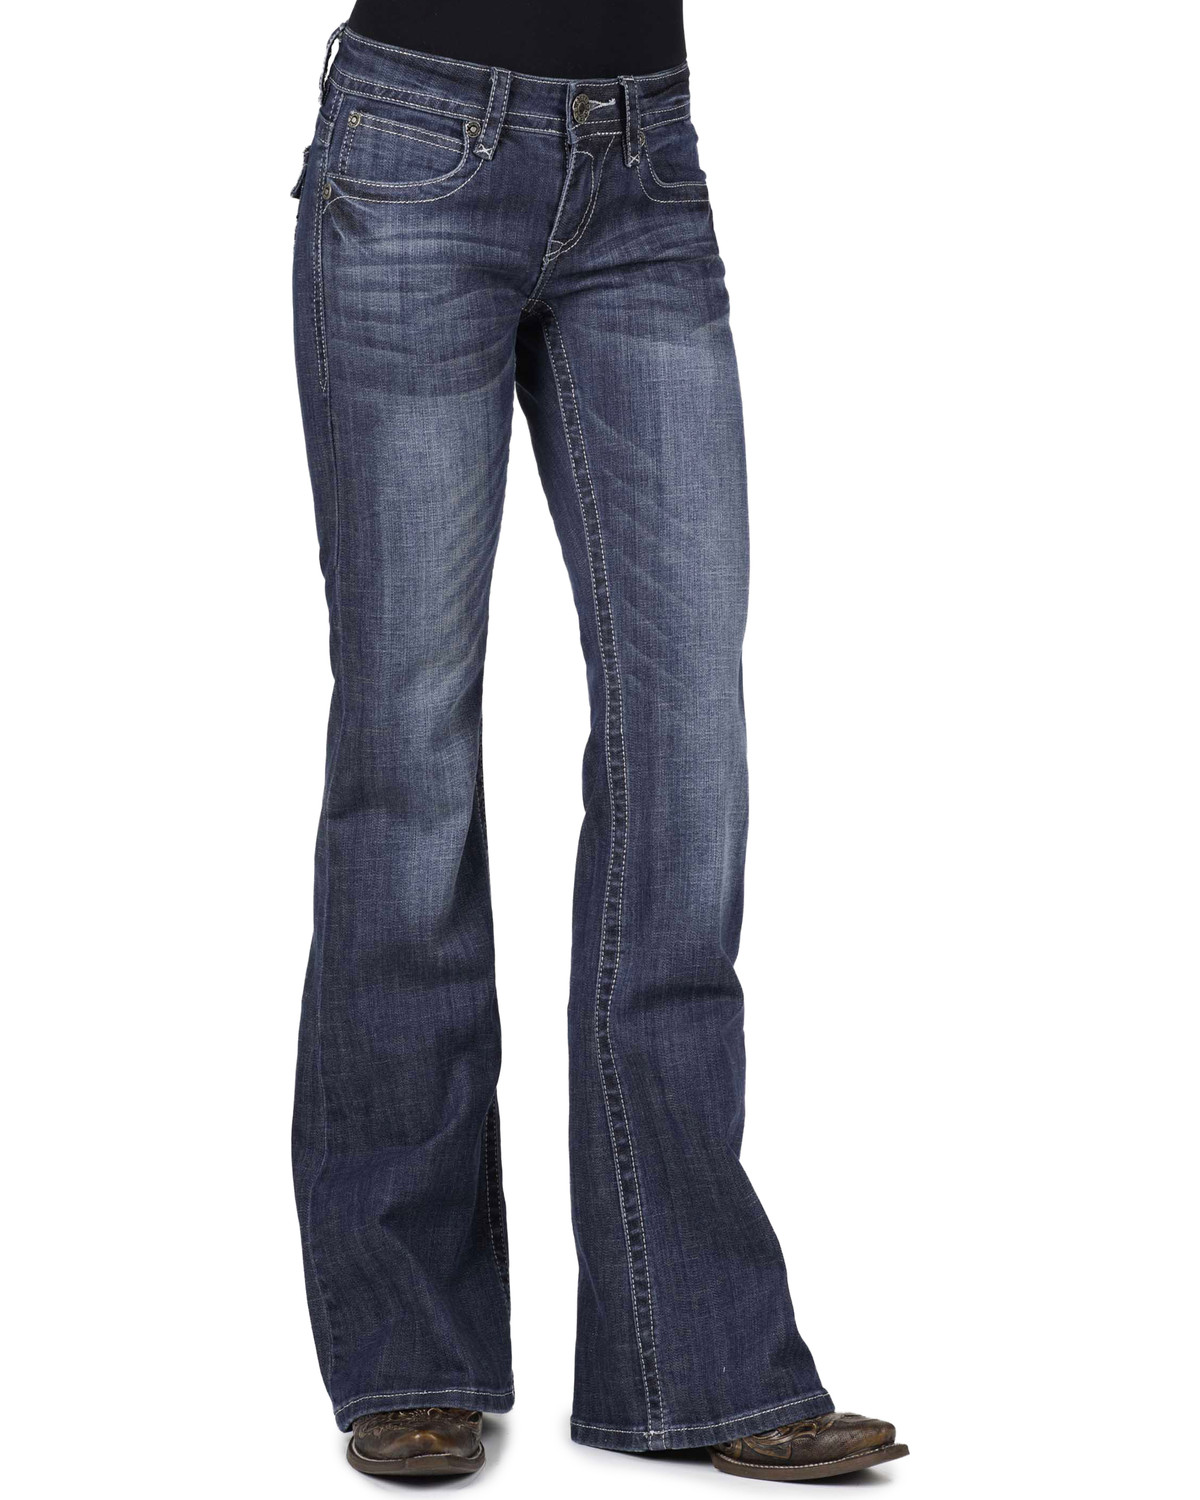 stetson women 39 s classic boot cut jeans boot barn. Black Bedroom Furniture Sets. Home Design Ideas